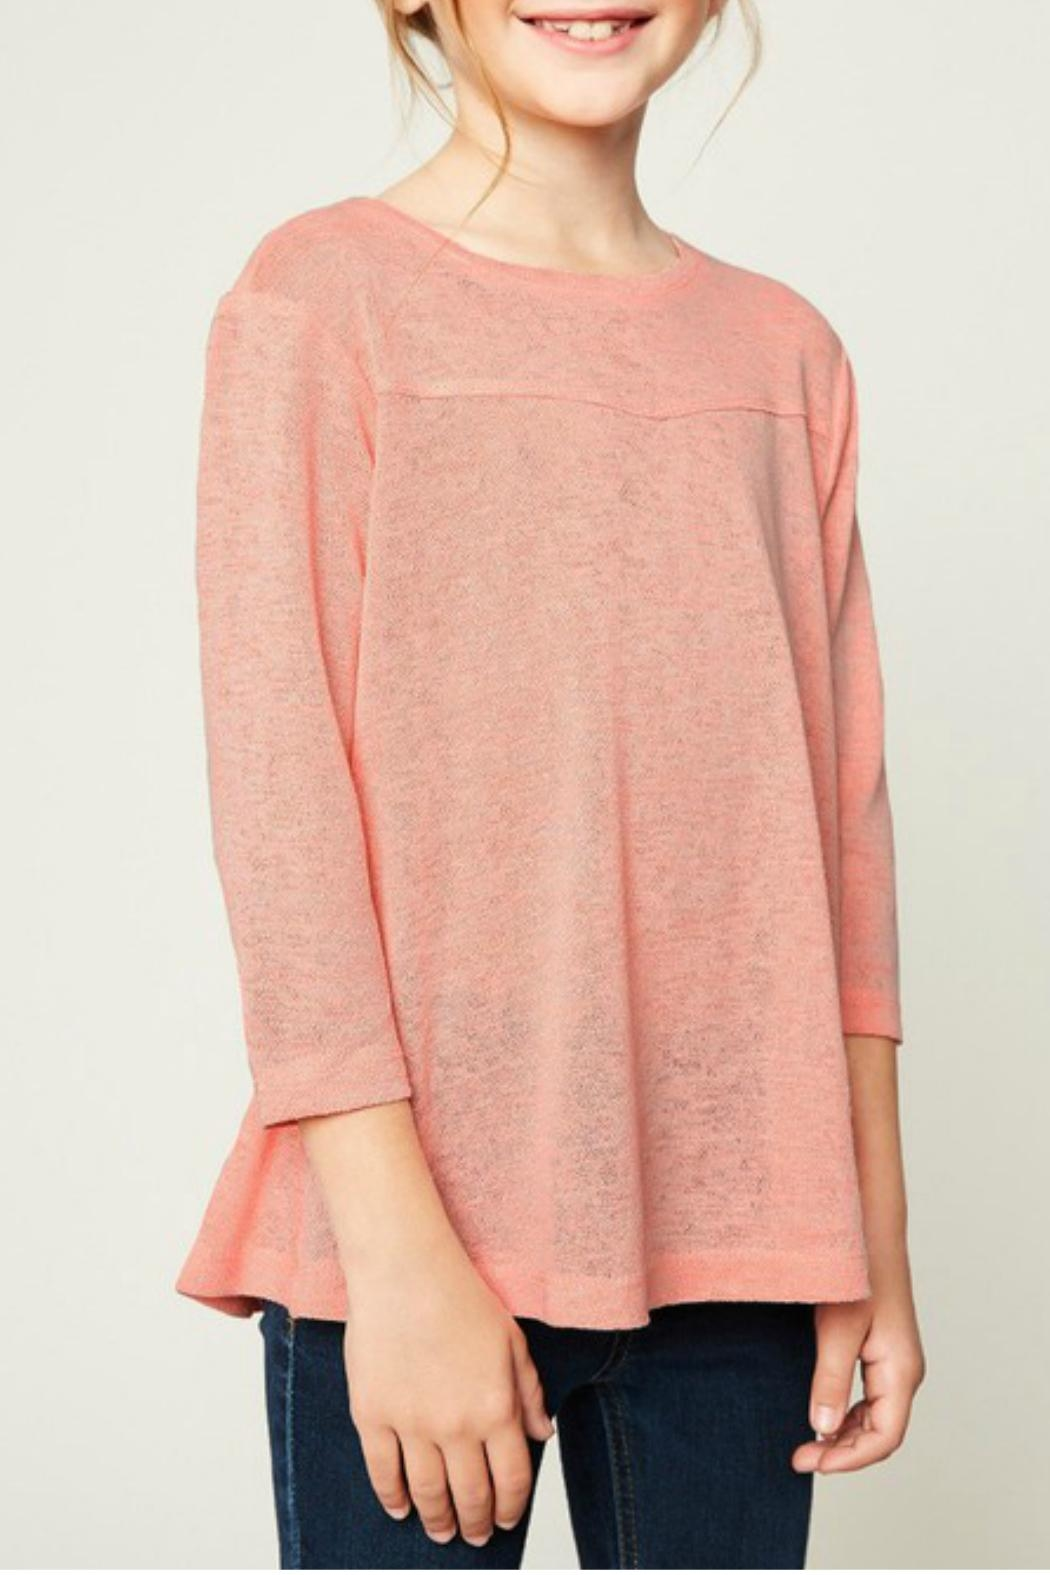 Hayden Los Angeles 3/4 Sleeve Blouse - Main Image